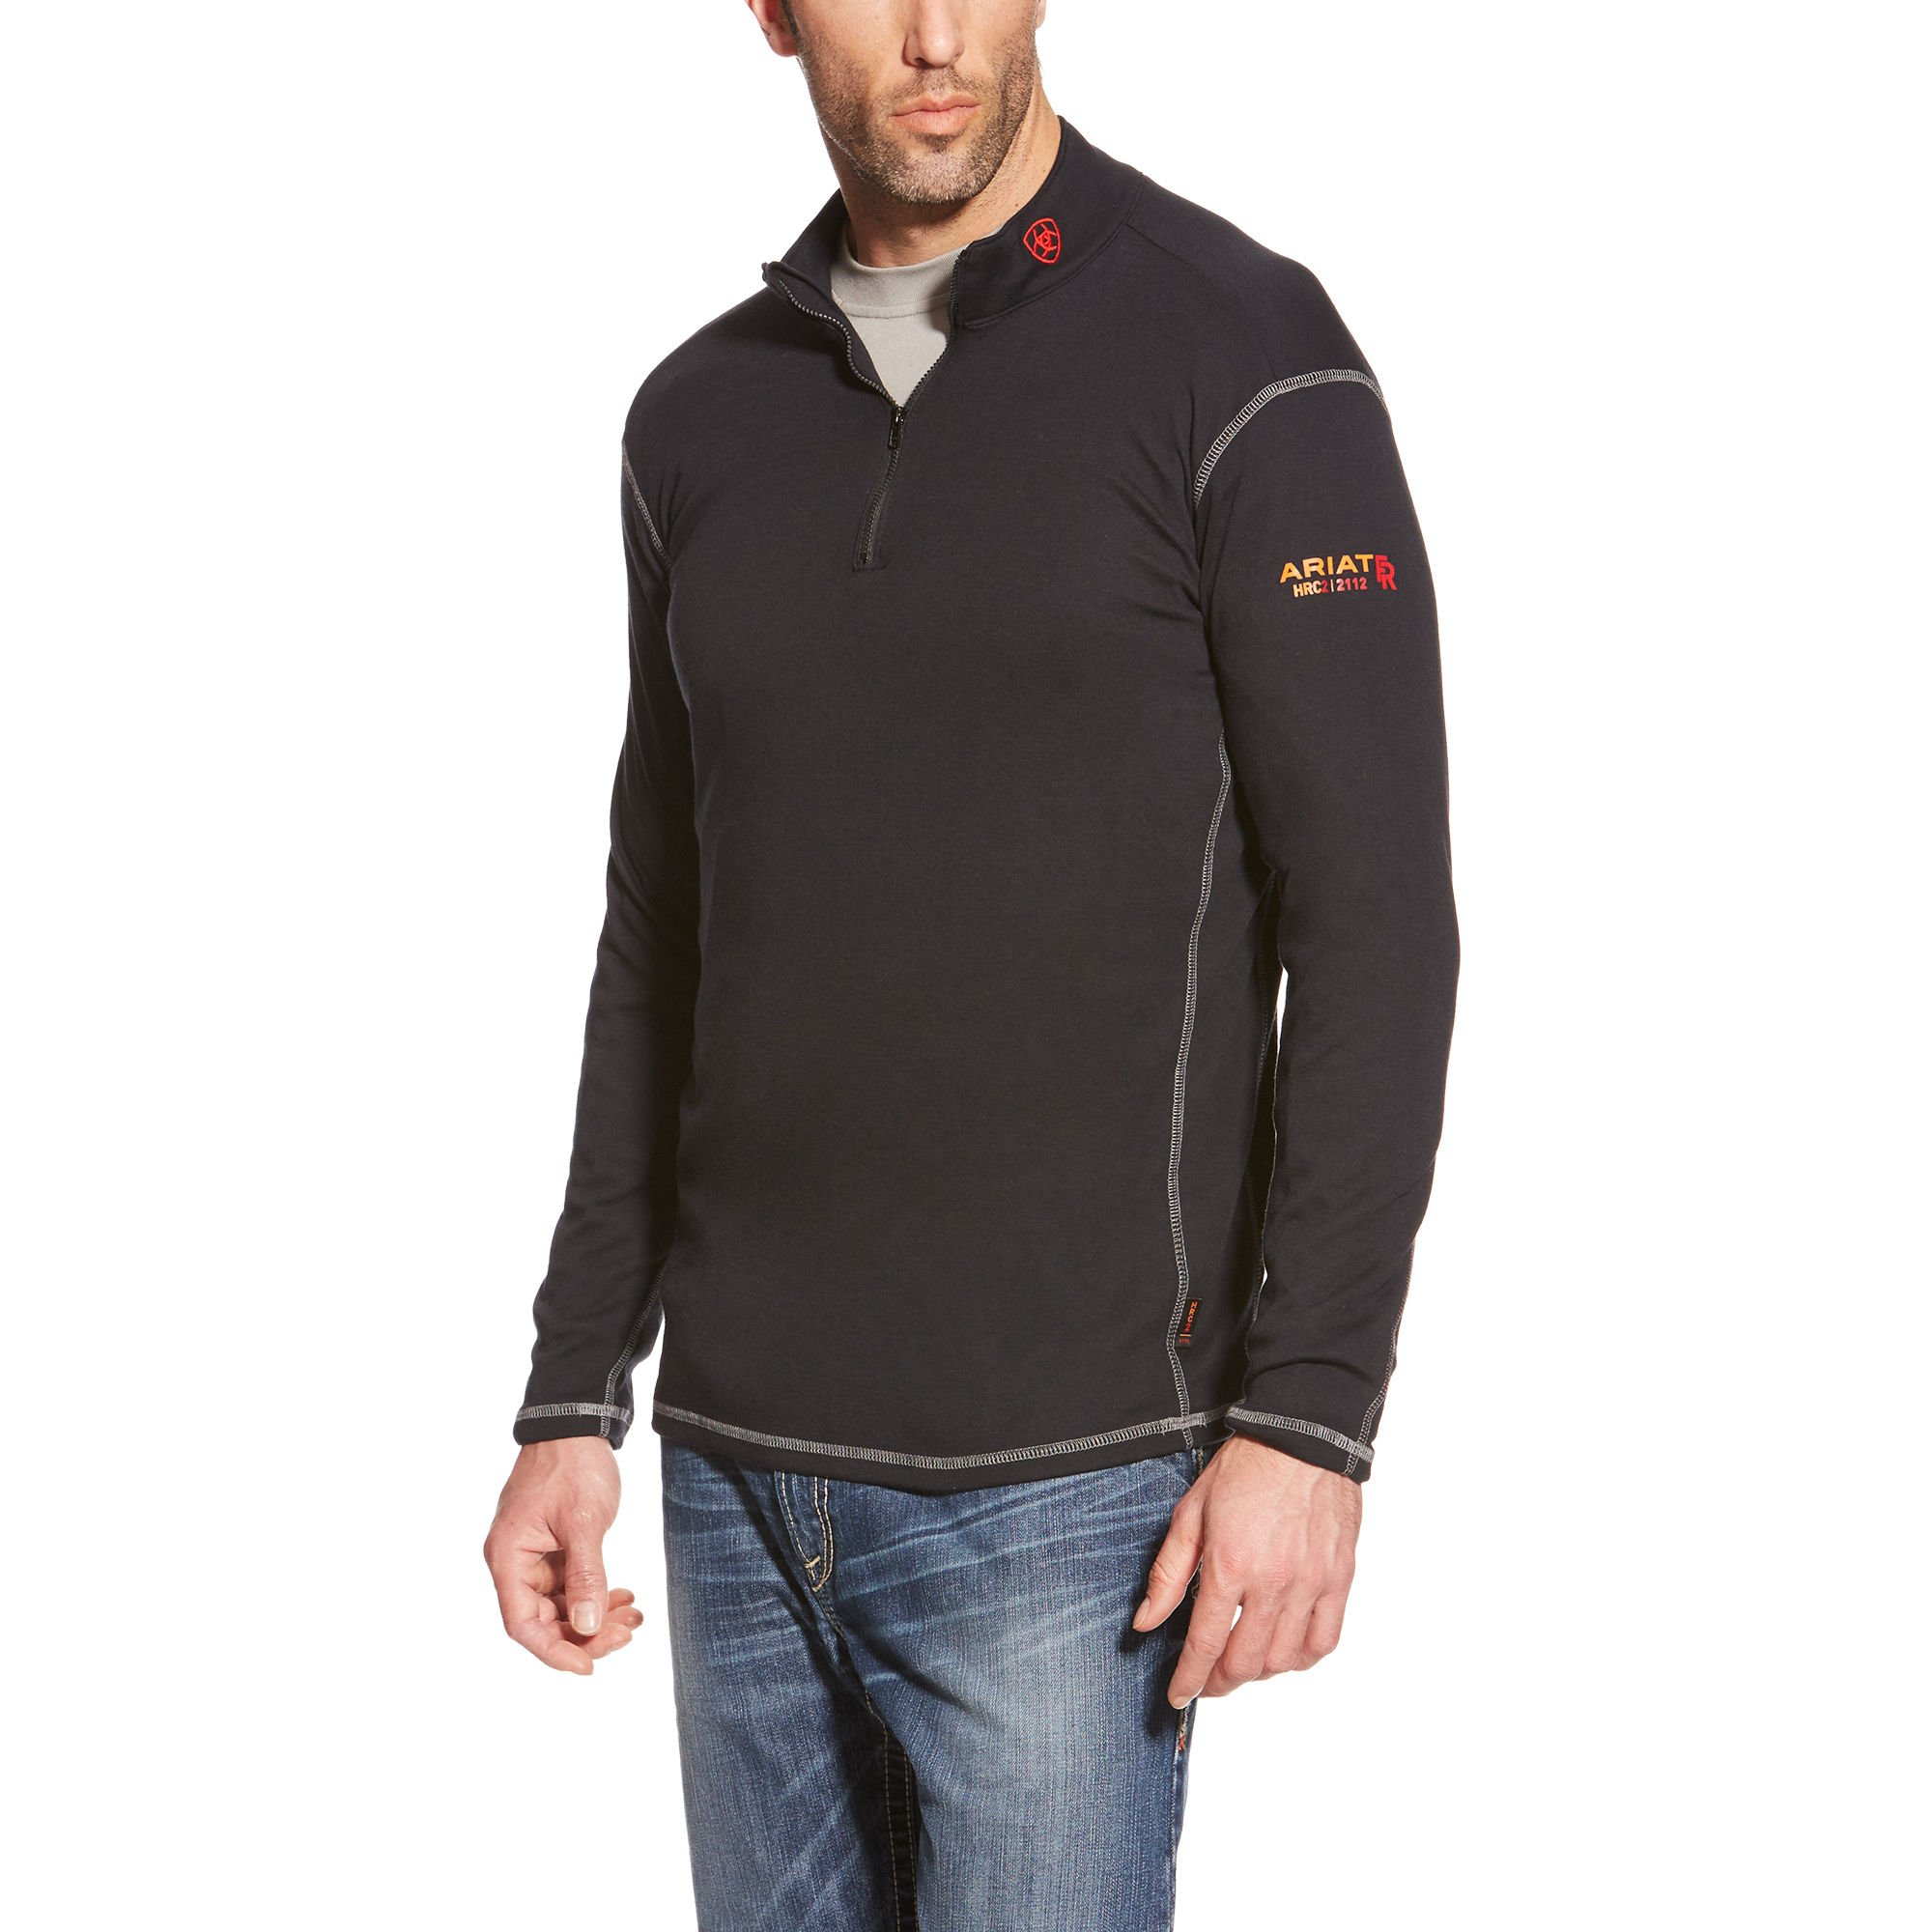 Ariat Men's Big and Tall Flame Resistant Polartec 1/4 Zip Base Layer, Black, X-Large- Tall